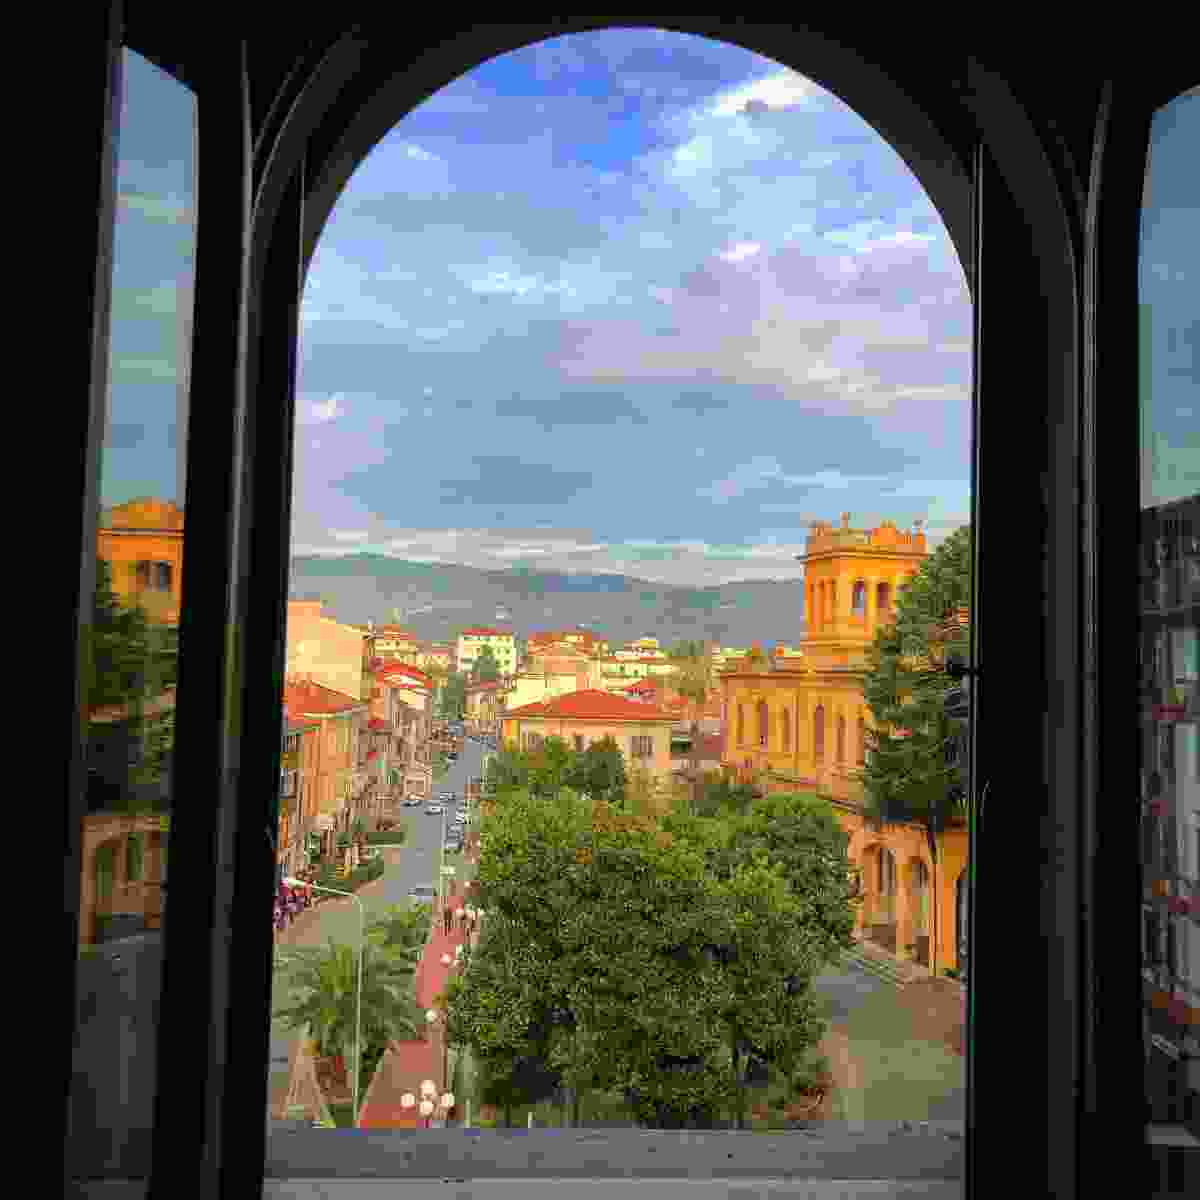 The Tuscan town of Montecatini Terme (Phoebe Smith)